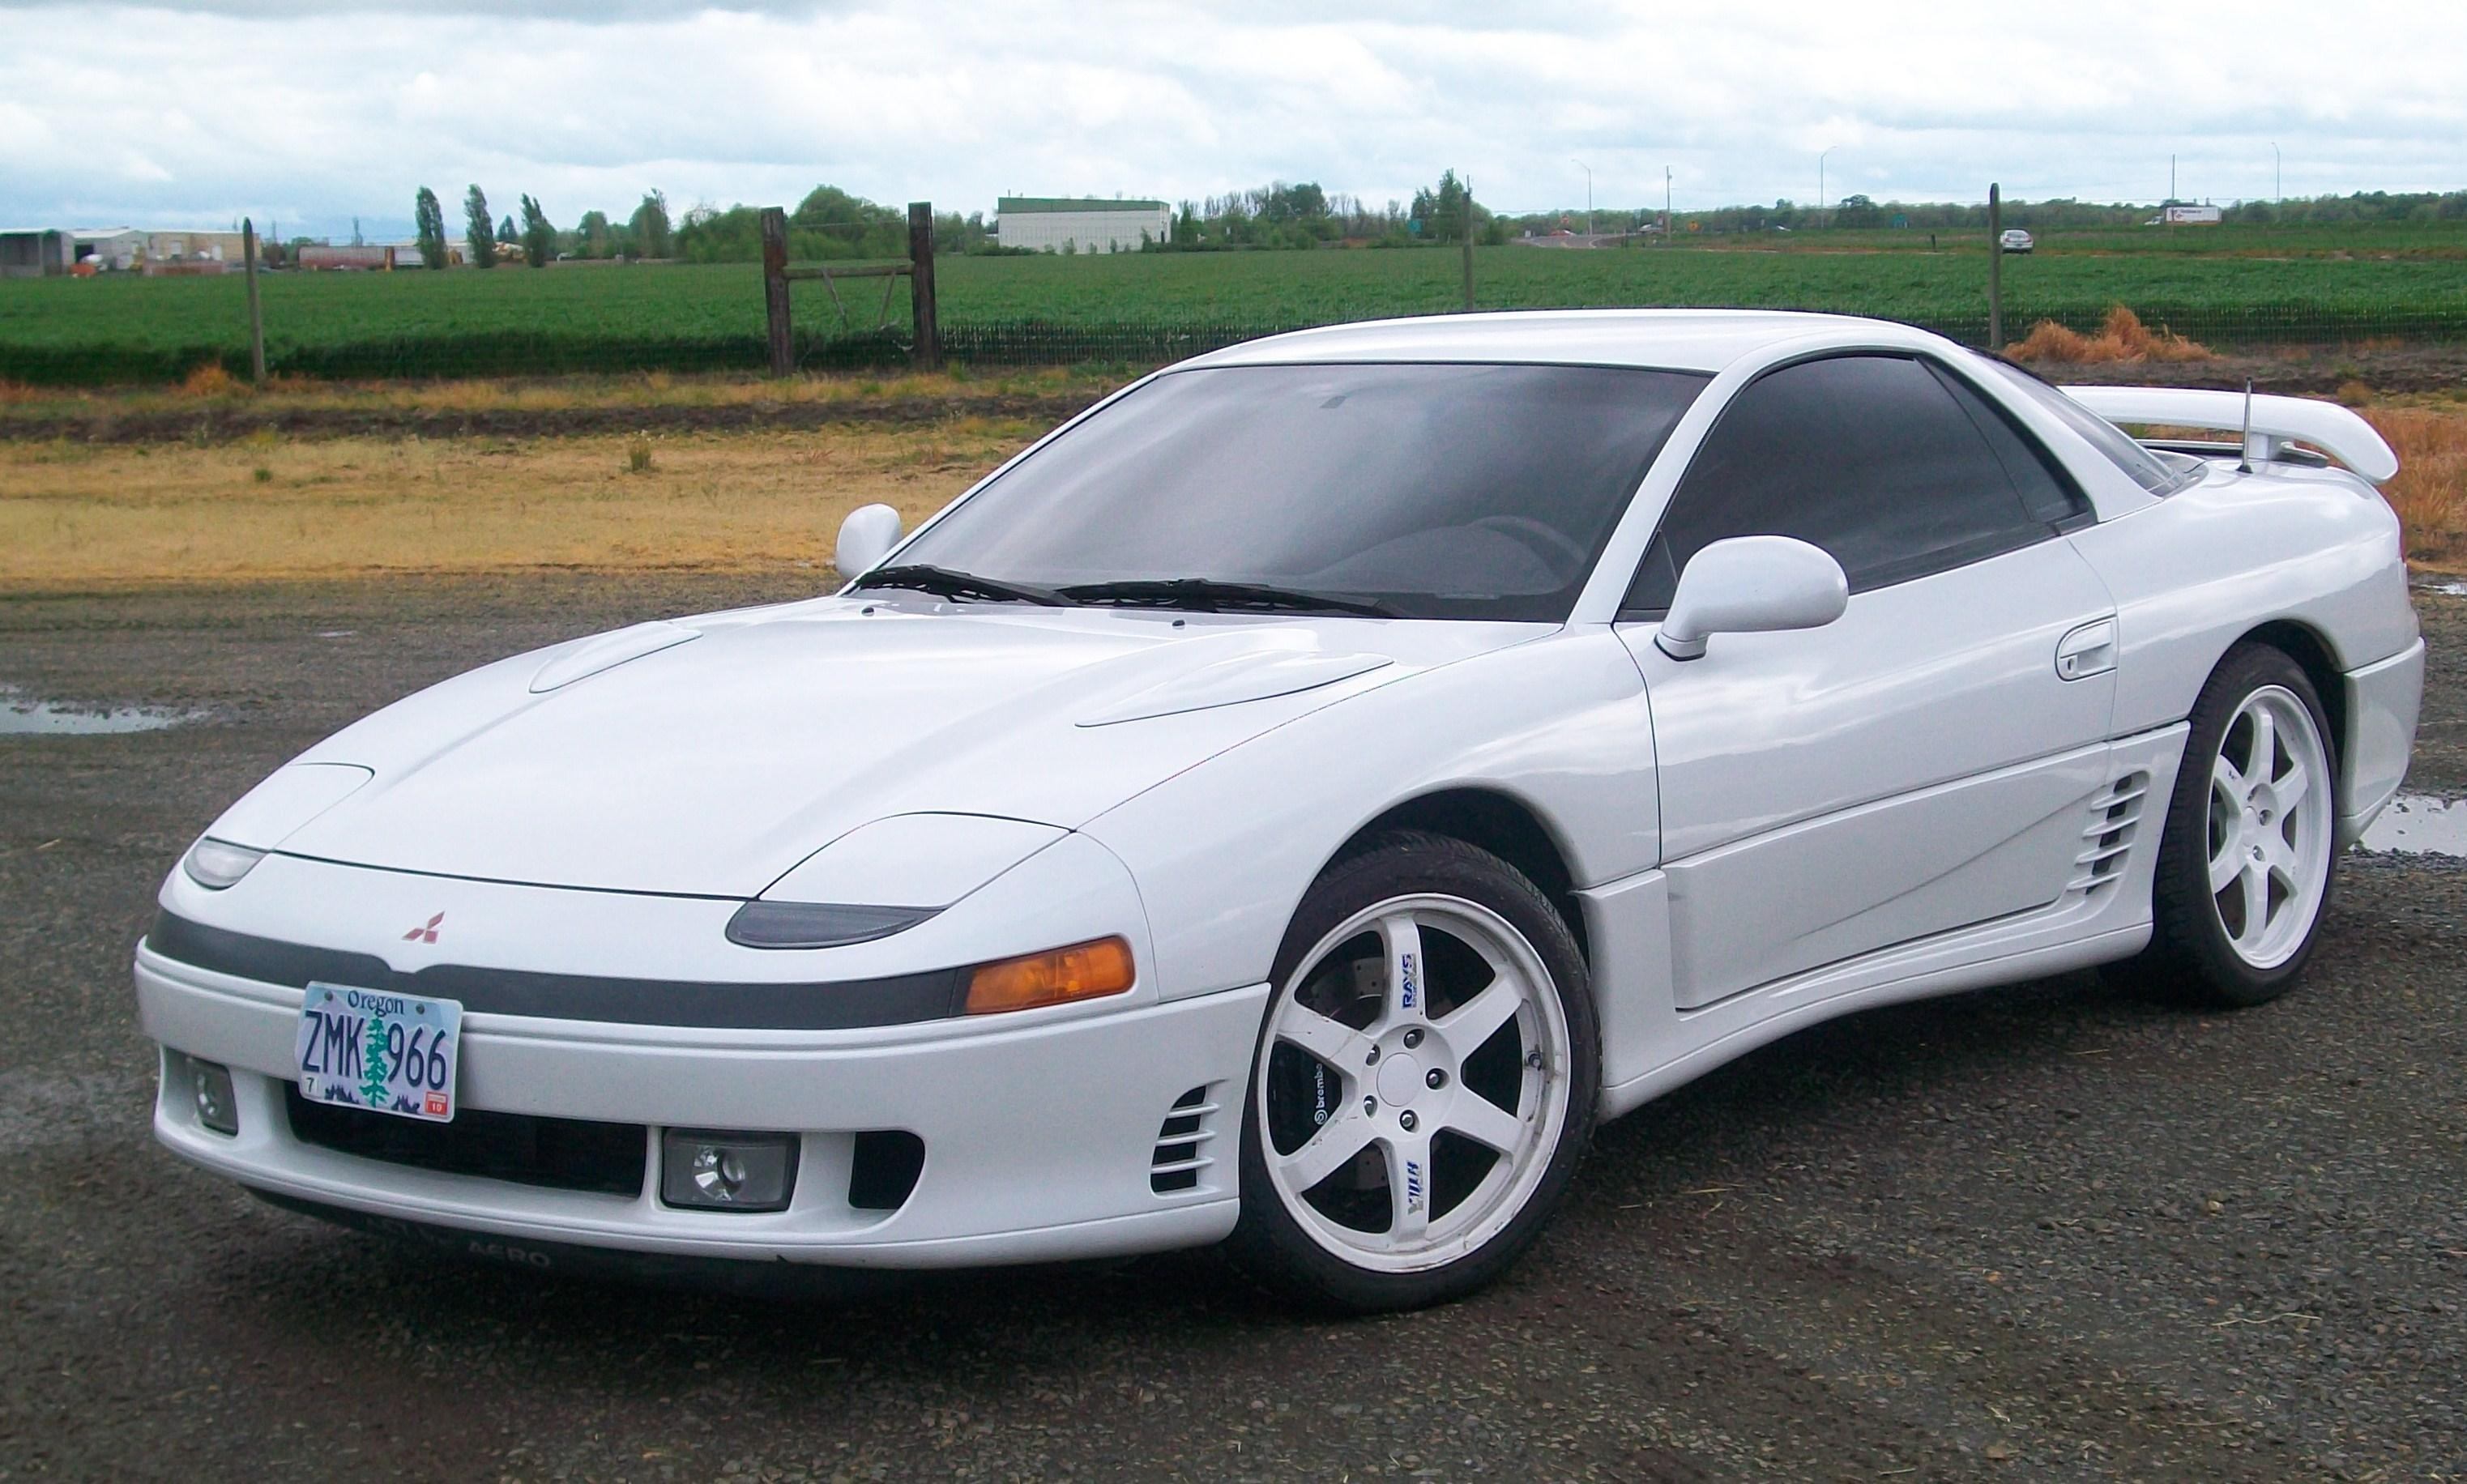 3000gt VR4 1991 Mitsubishi 3000GT Specs, Photos, Modification Info At CarDomain